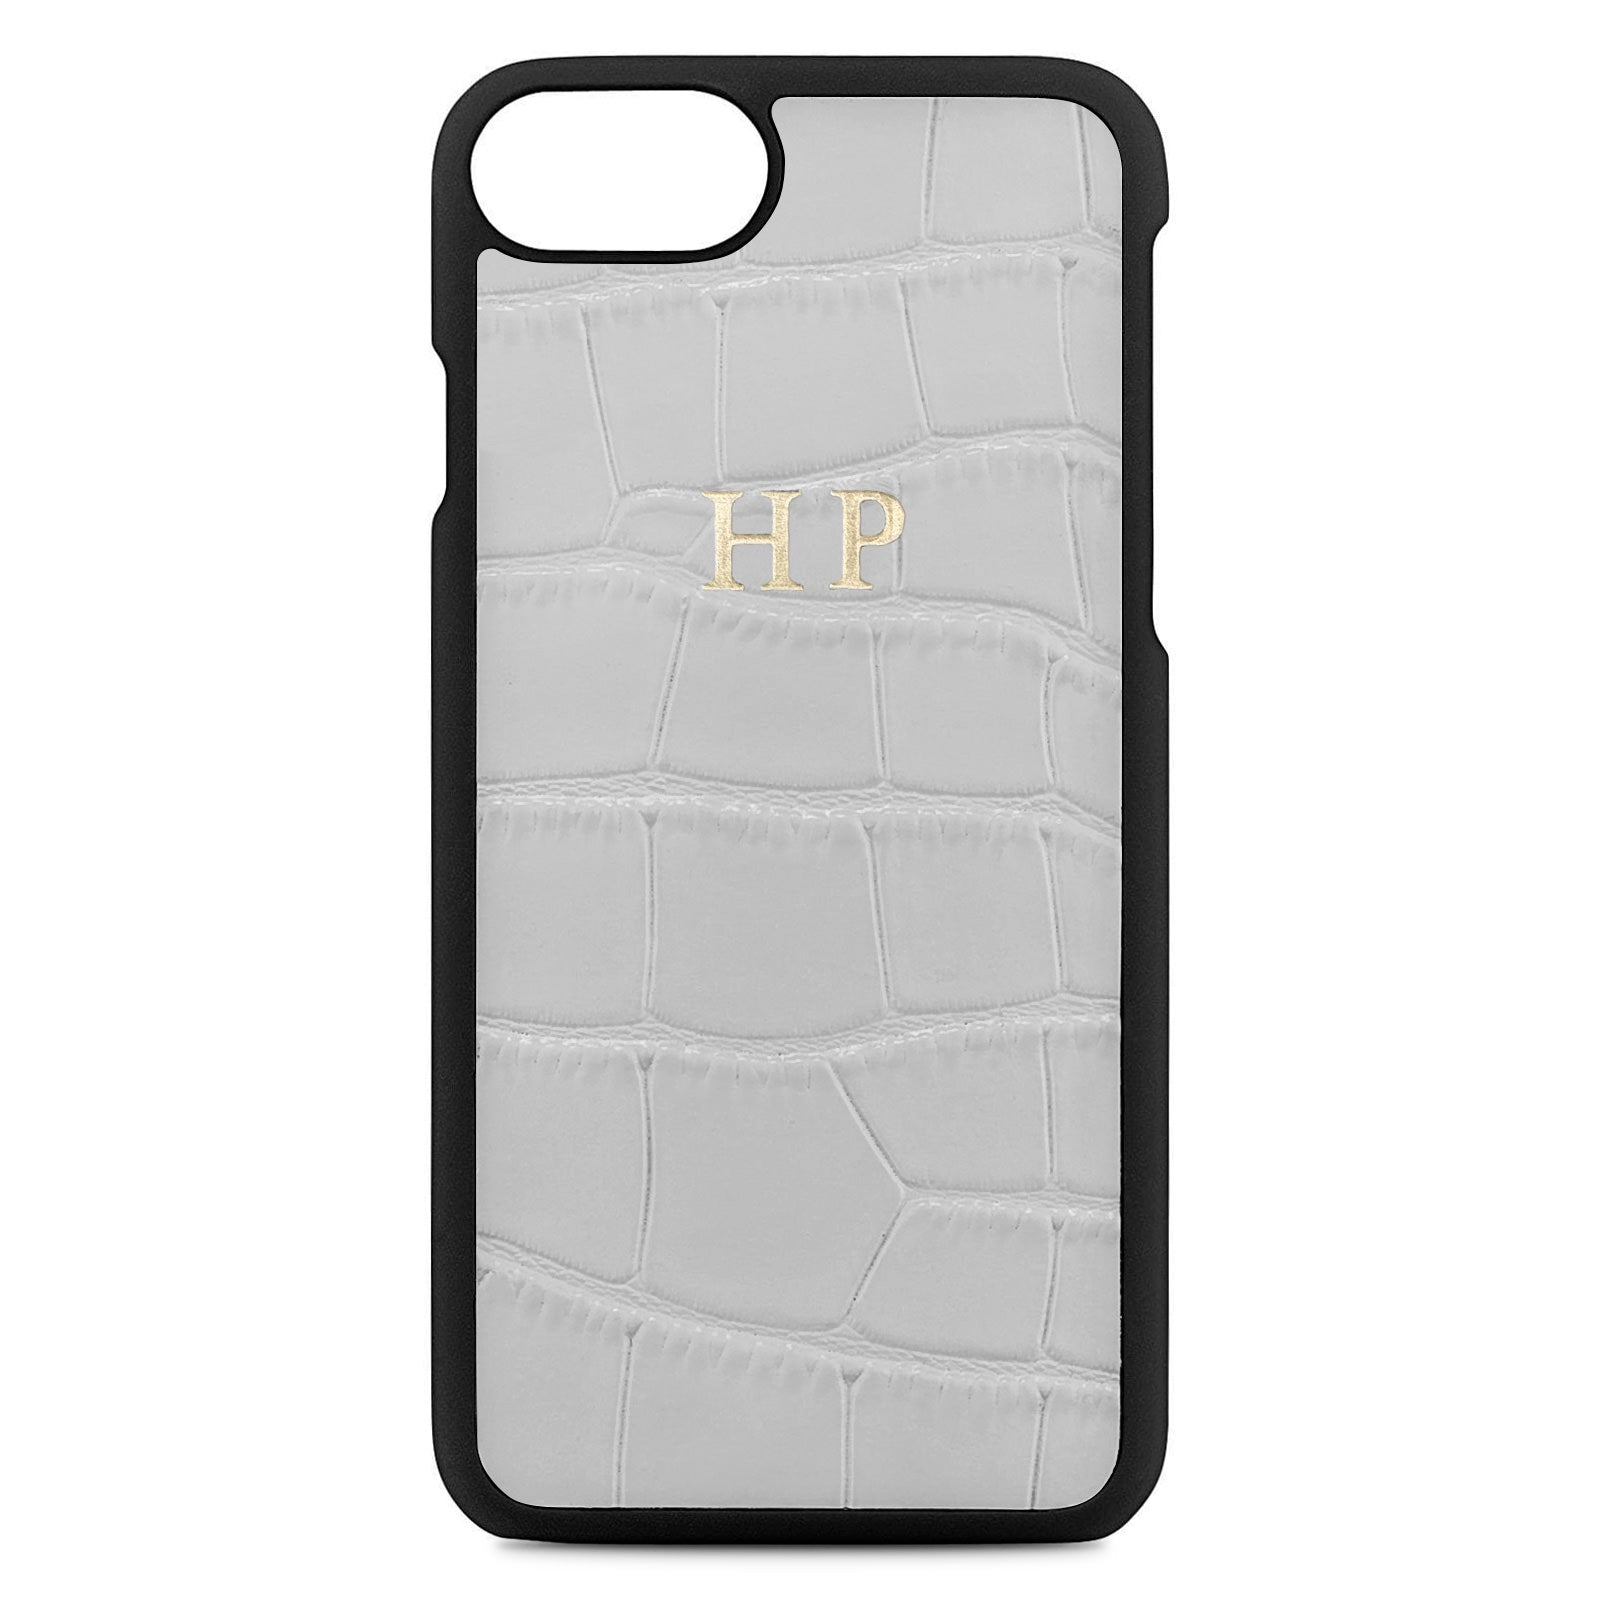 Personalised Grey Croc Leather iPhone Case